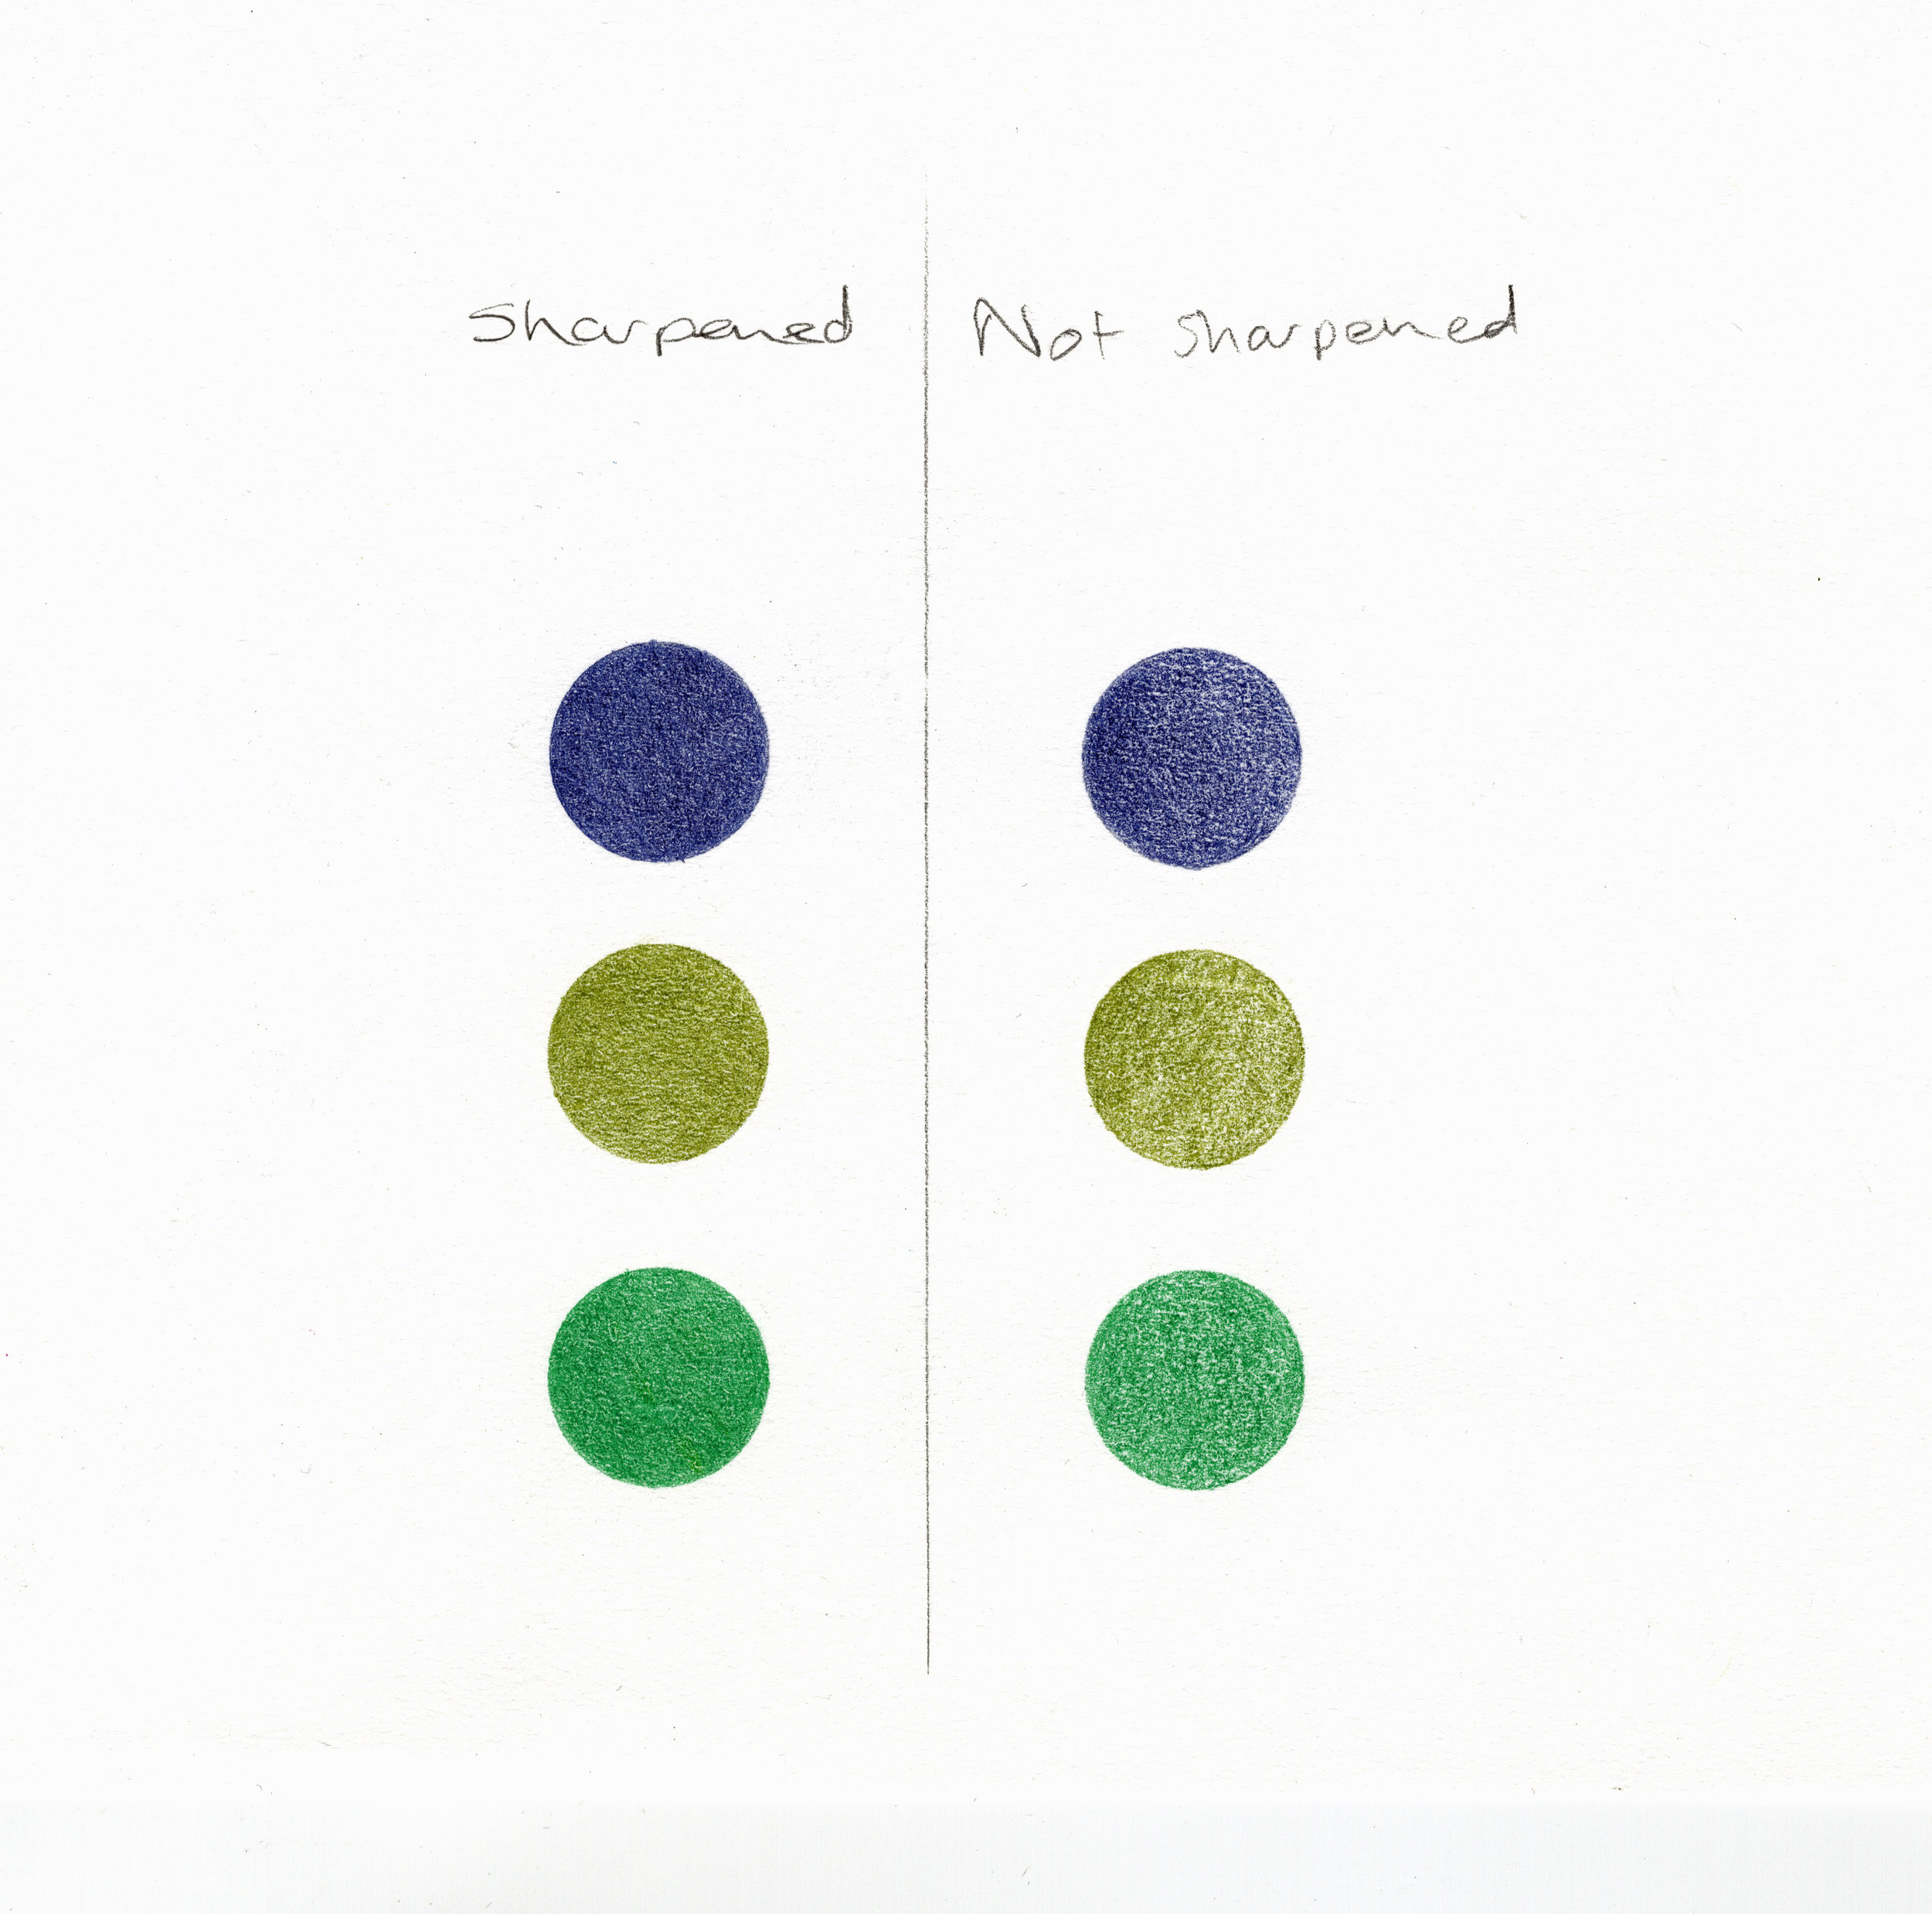 Image description; six coloured circles, three on the left drawn in sharpened pencils, three on the right drawn in not sharpened pencils. The three on the left look nicer.